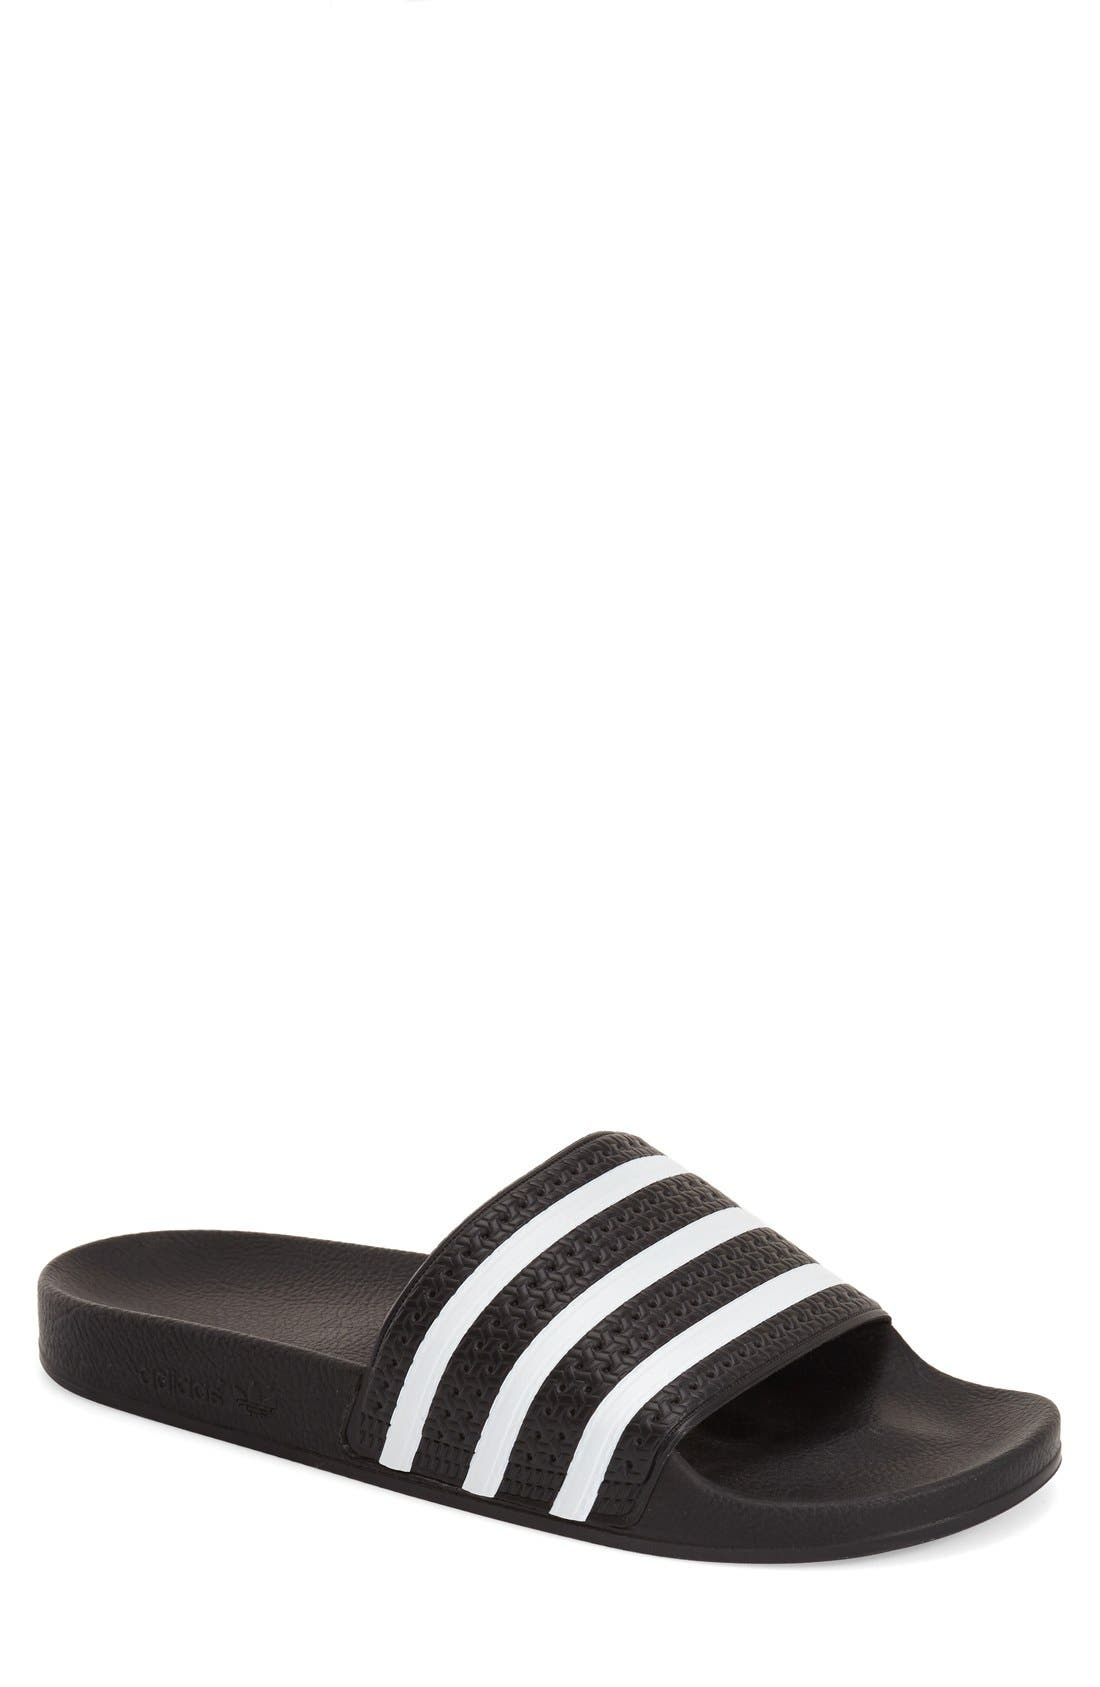 adidas Adilette Slide Sandal (Men) (Regular Retail Price: $44.95)